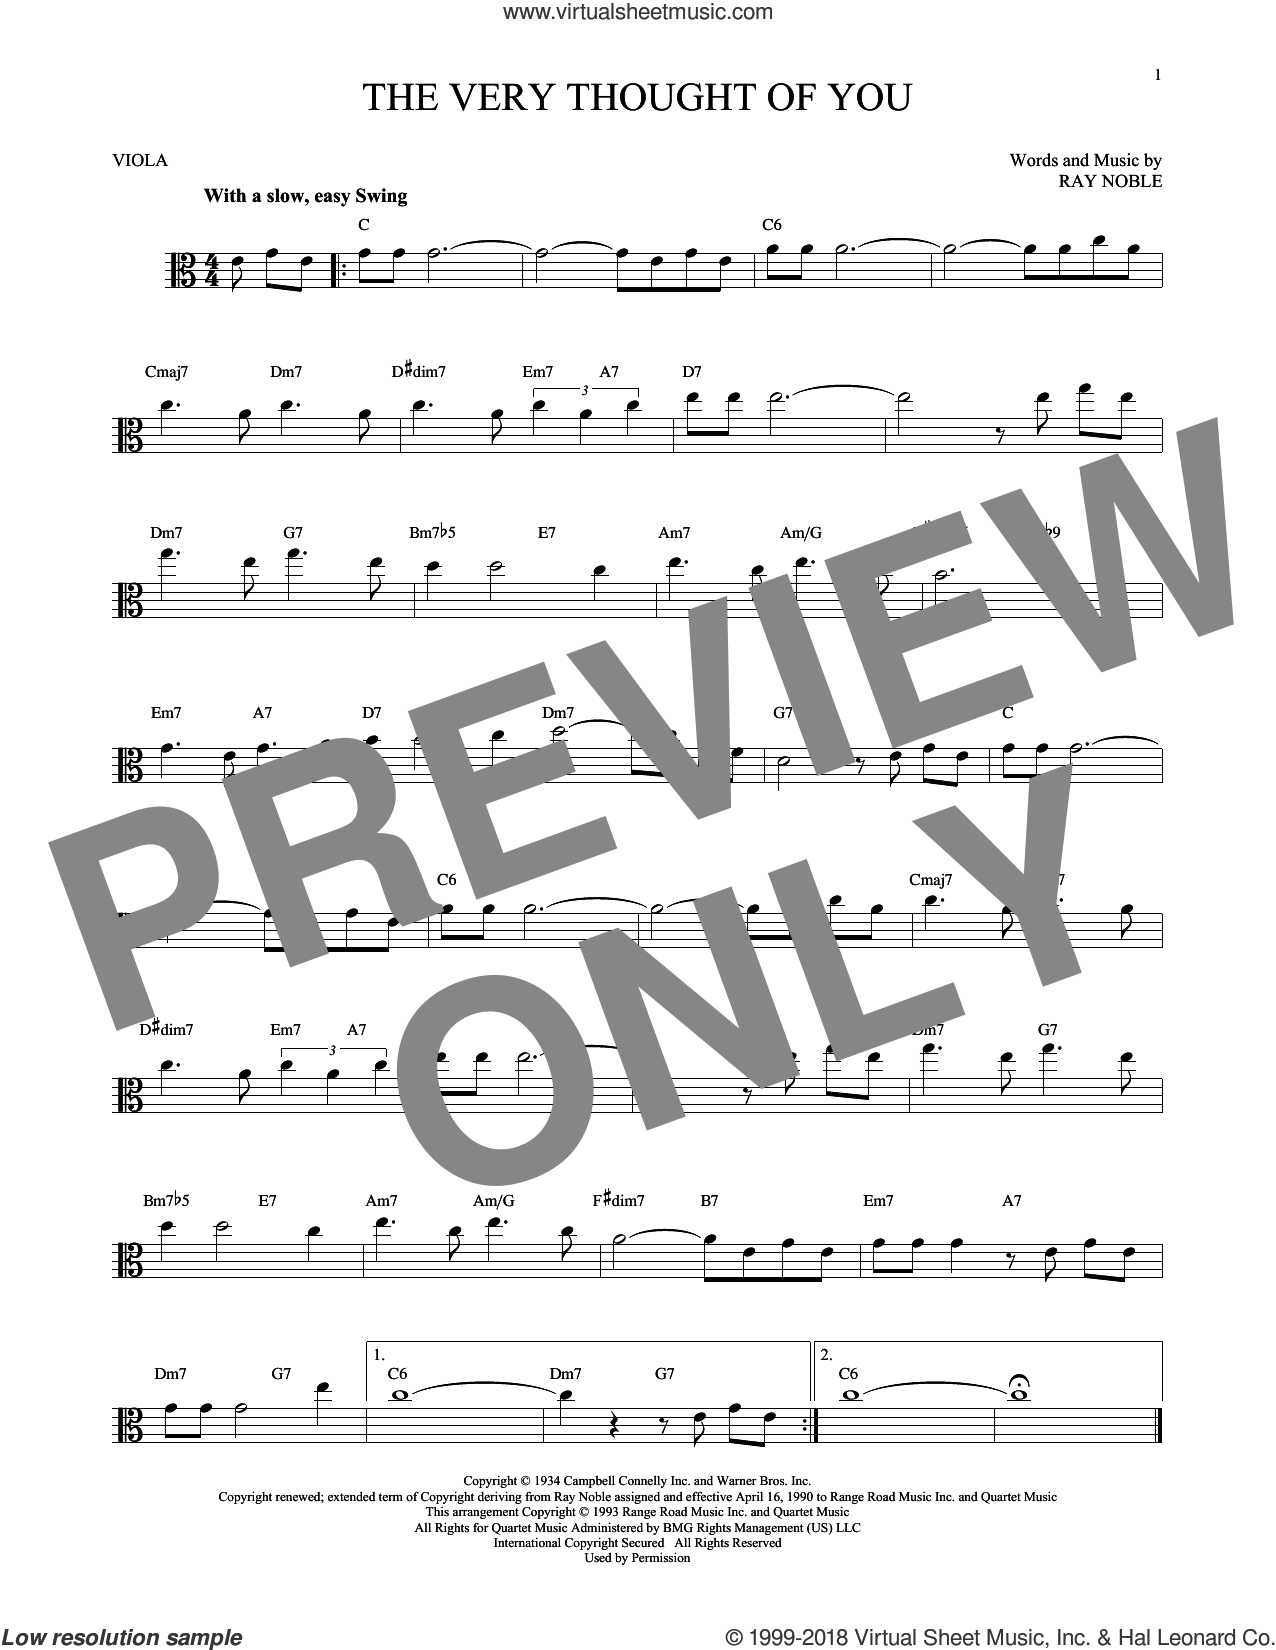 The Very Thought Of You sheet music for viola solo by Ray Noble, intermediate skill level